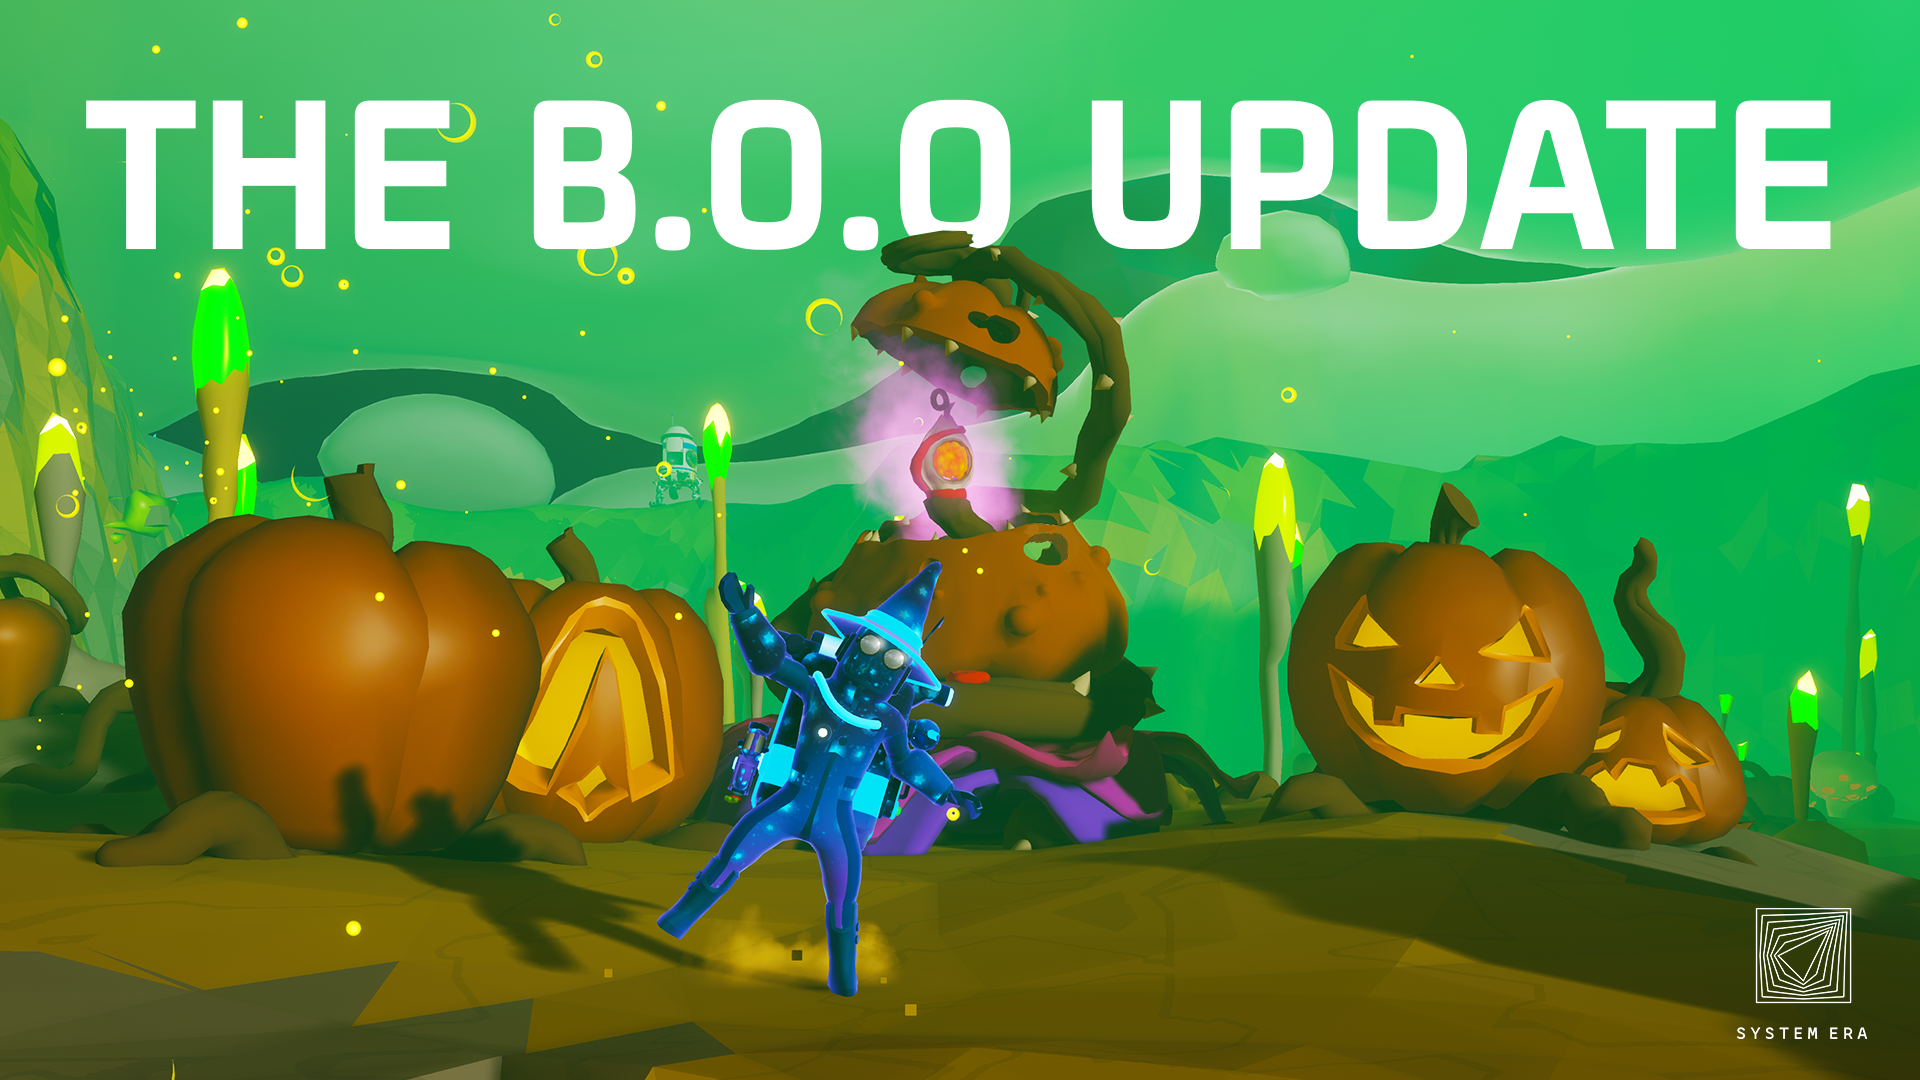 The Biofuel Obtainment Operation (B.O.O) Update is live!